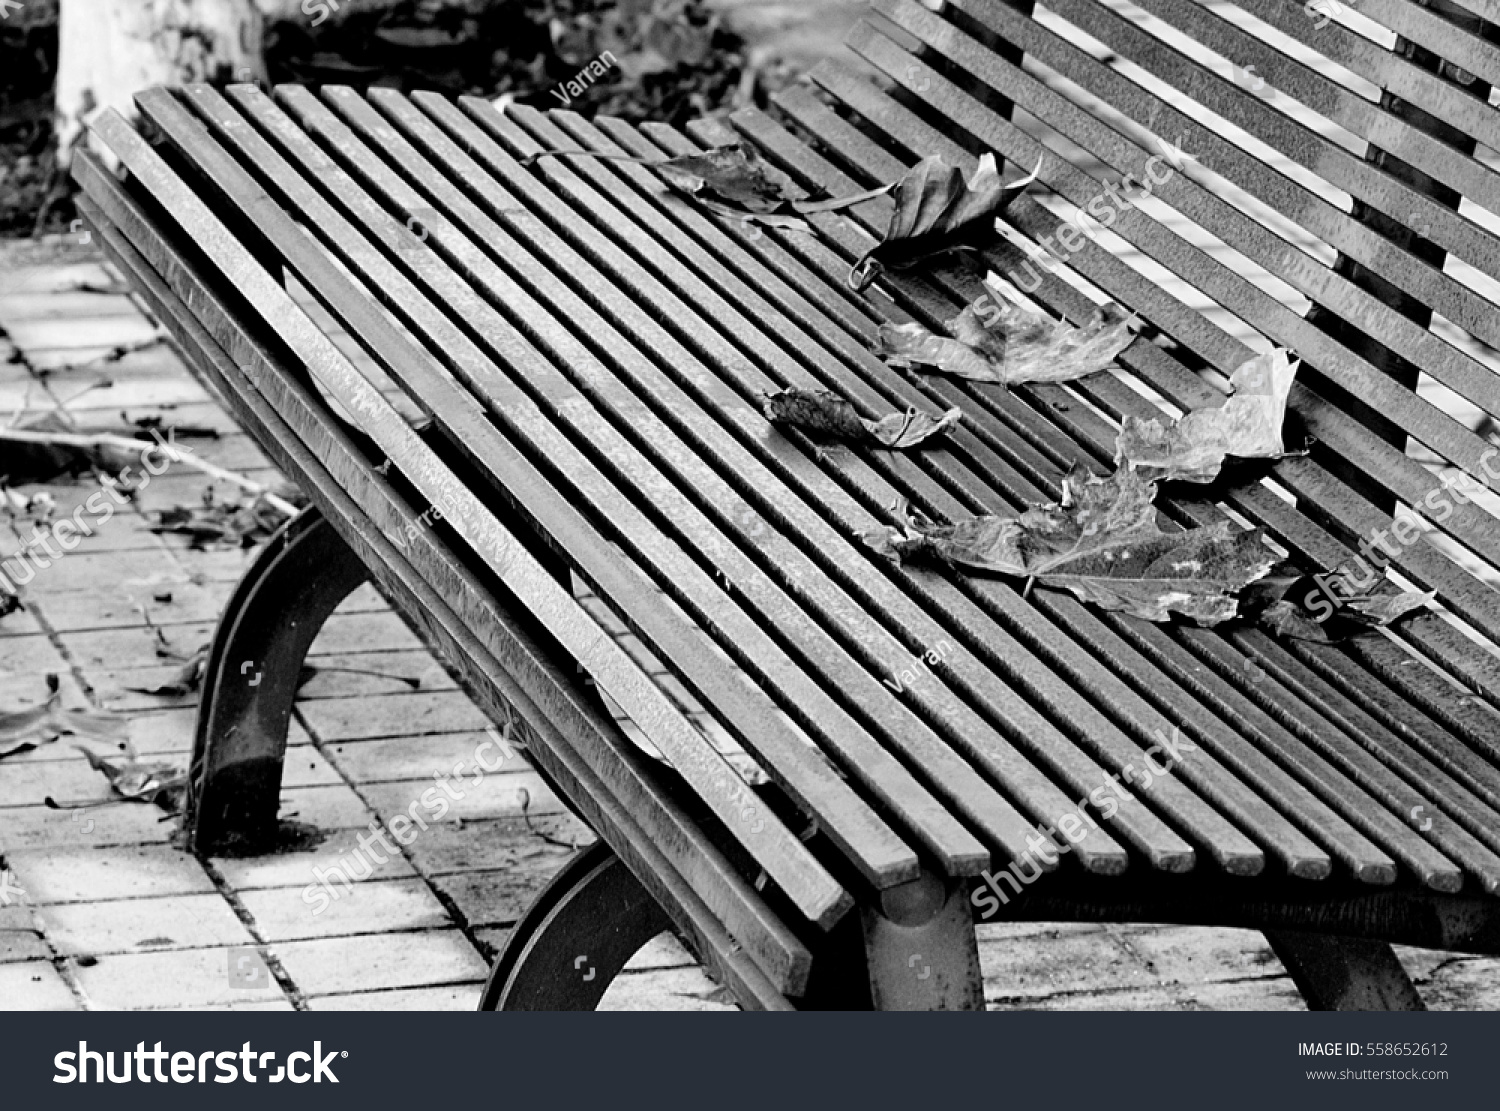 Nice black and white photo of a bench with autumn leaves